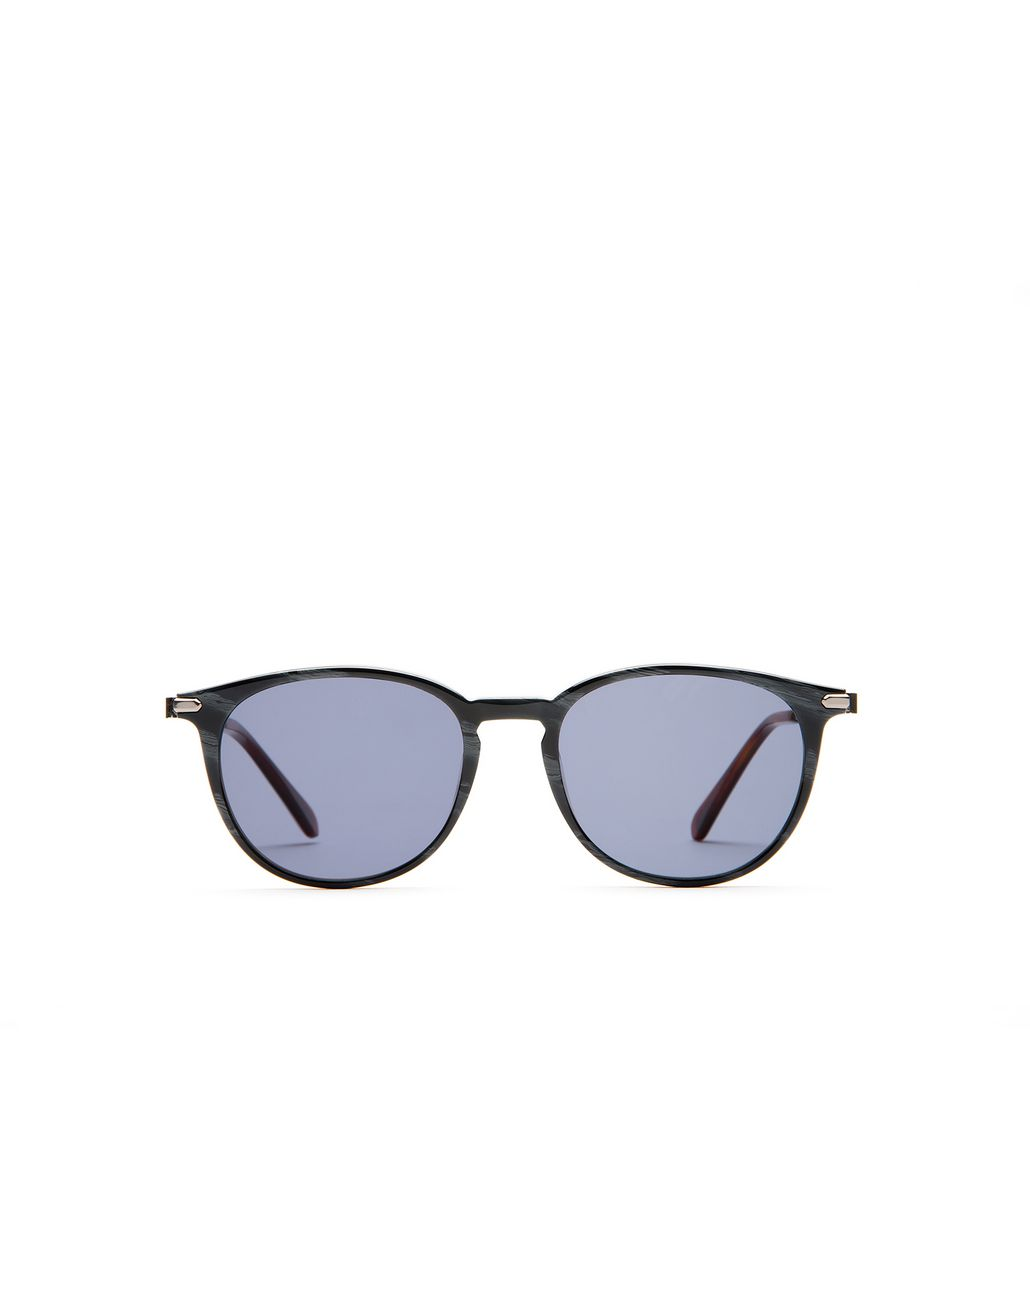 BRIONI Night & Day Gray and Havana Retro Pantos Sunglasses Sunglasses U f